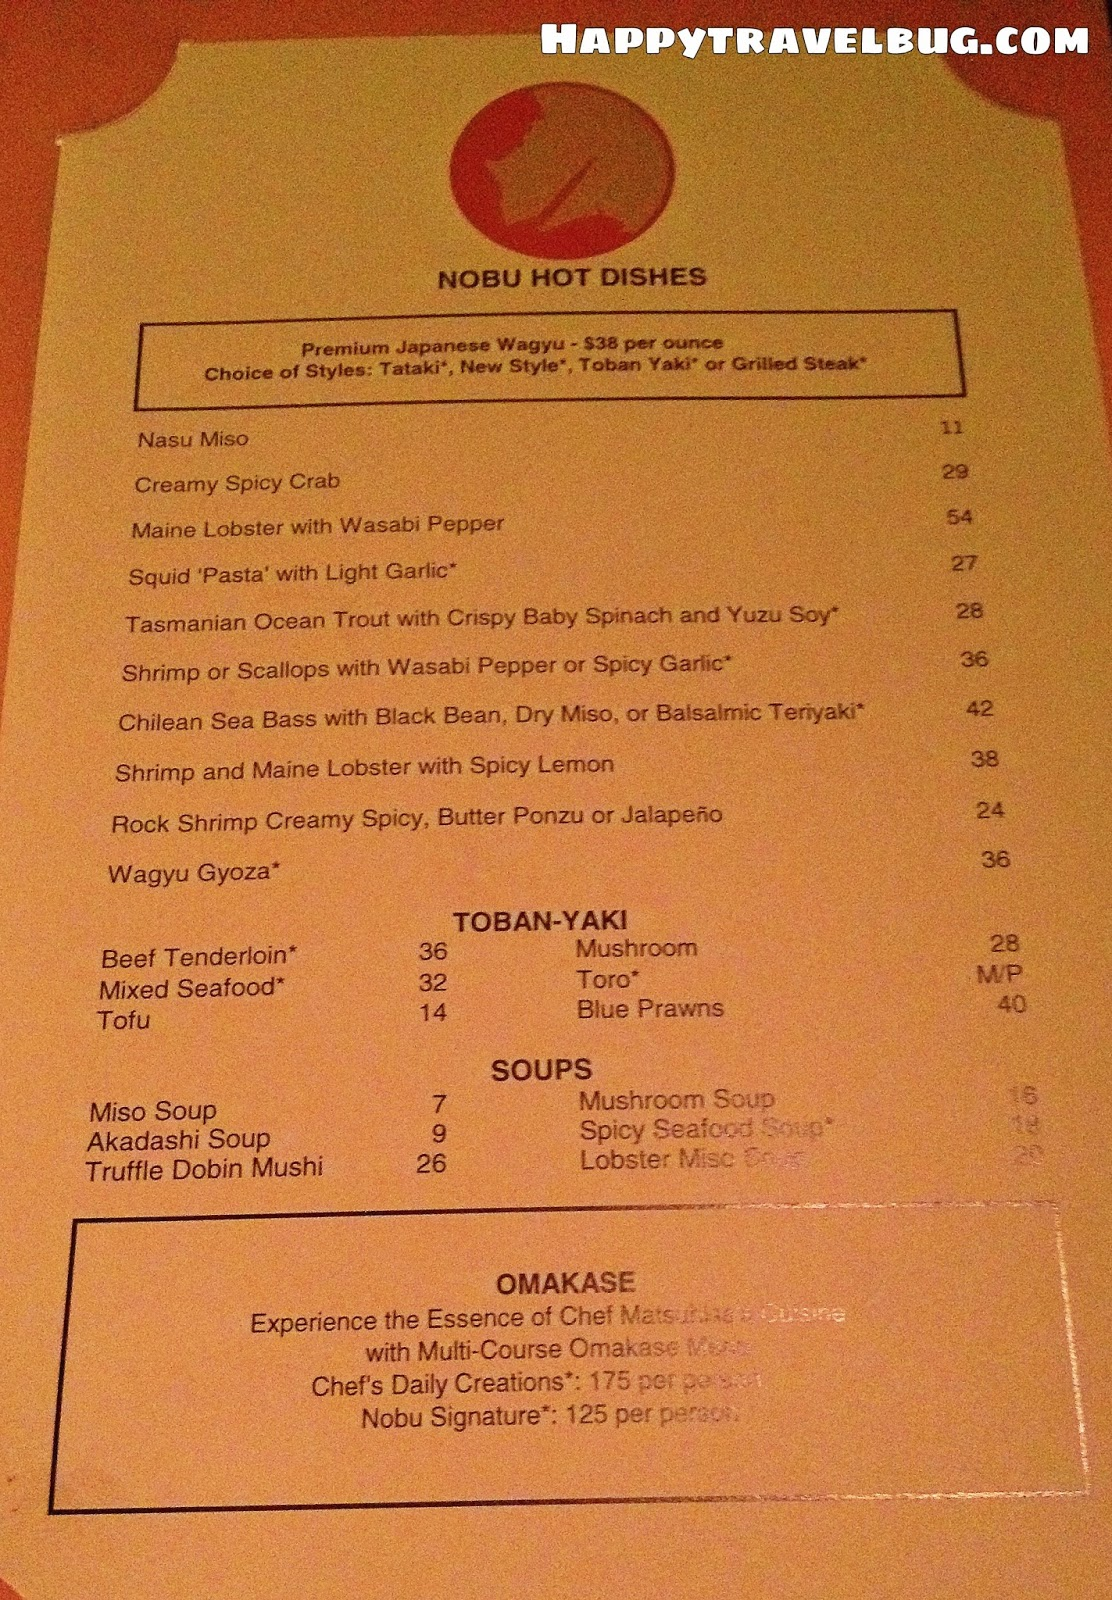 Nobu Hot dishes menu in Las Vegas